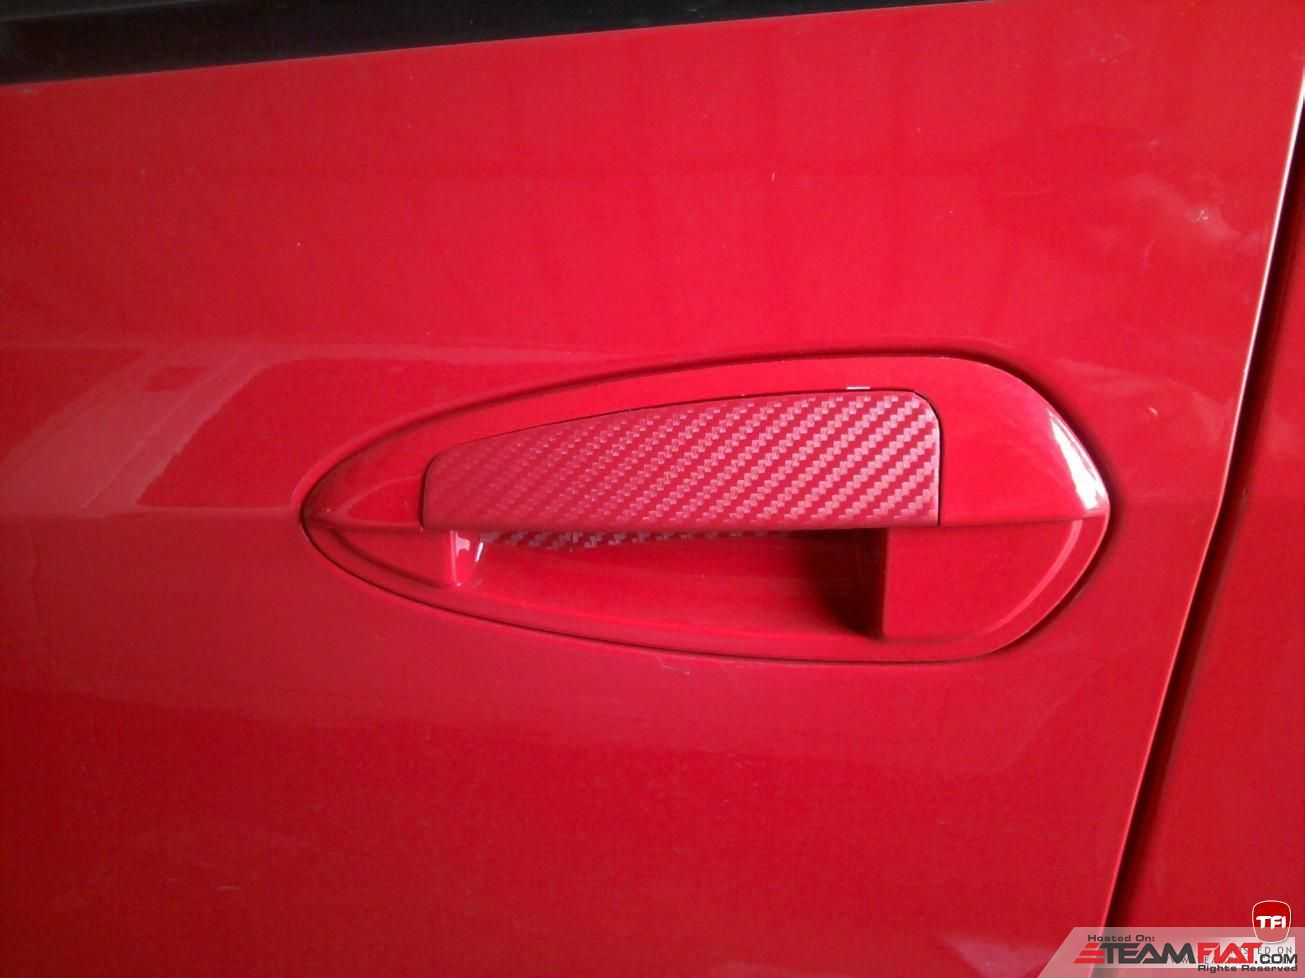 16668d1323147115-diy-carbon-fiber-vinyls-side-view-mirrors-door2011-12-06-10.06.36.jpg